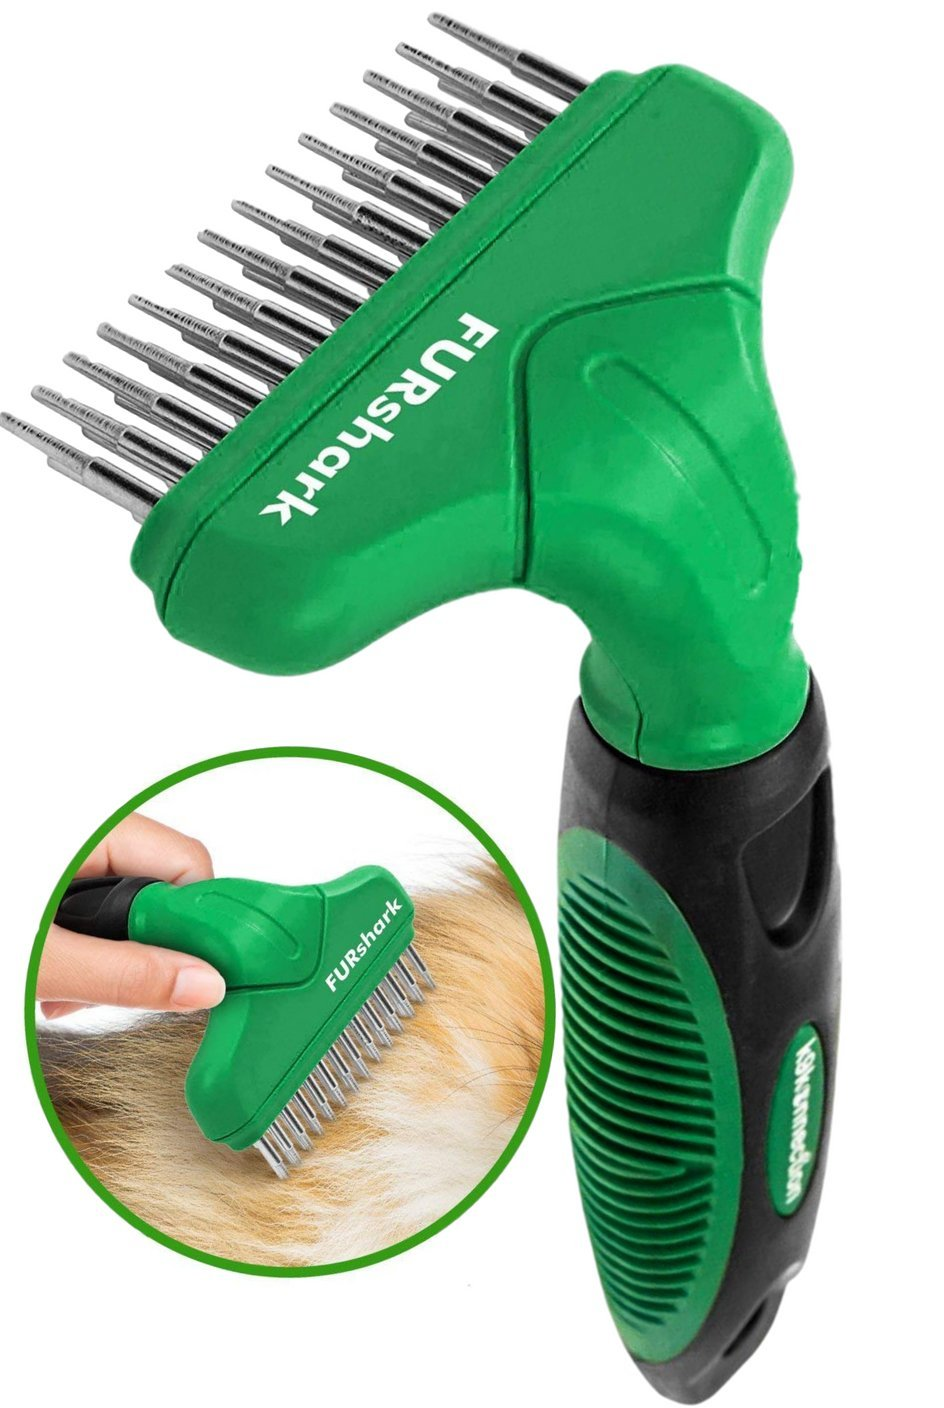 K9KONNECTION FURshark Deshedding Tool for Dogs & Cats - Professional Dog Brushes For Shedding - Undercoat Rake Tool - Pet Grooming Brush for Long, Medium Hair - Rotating Double Stainless Steel Pins